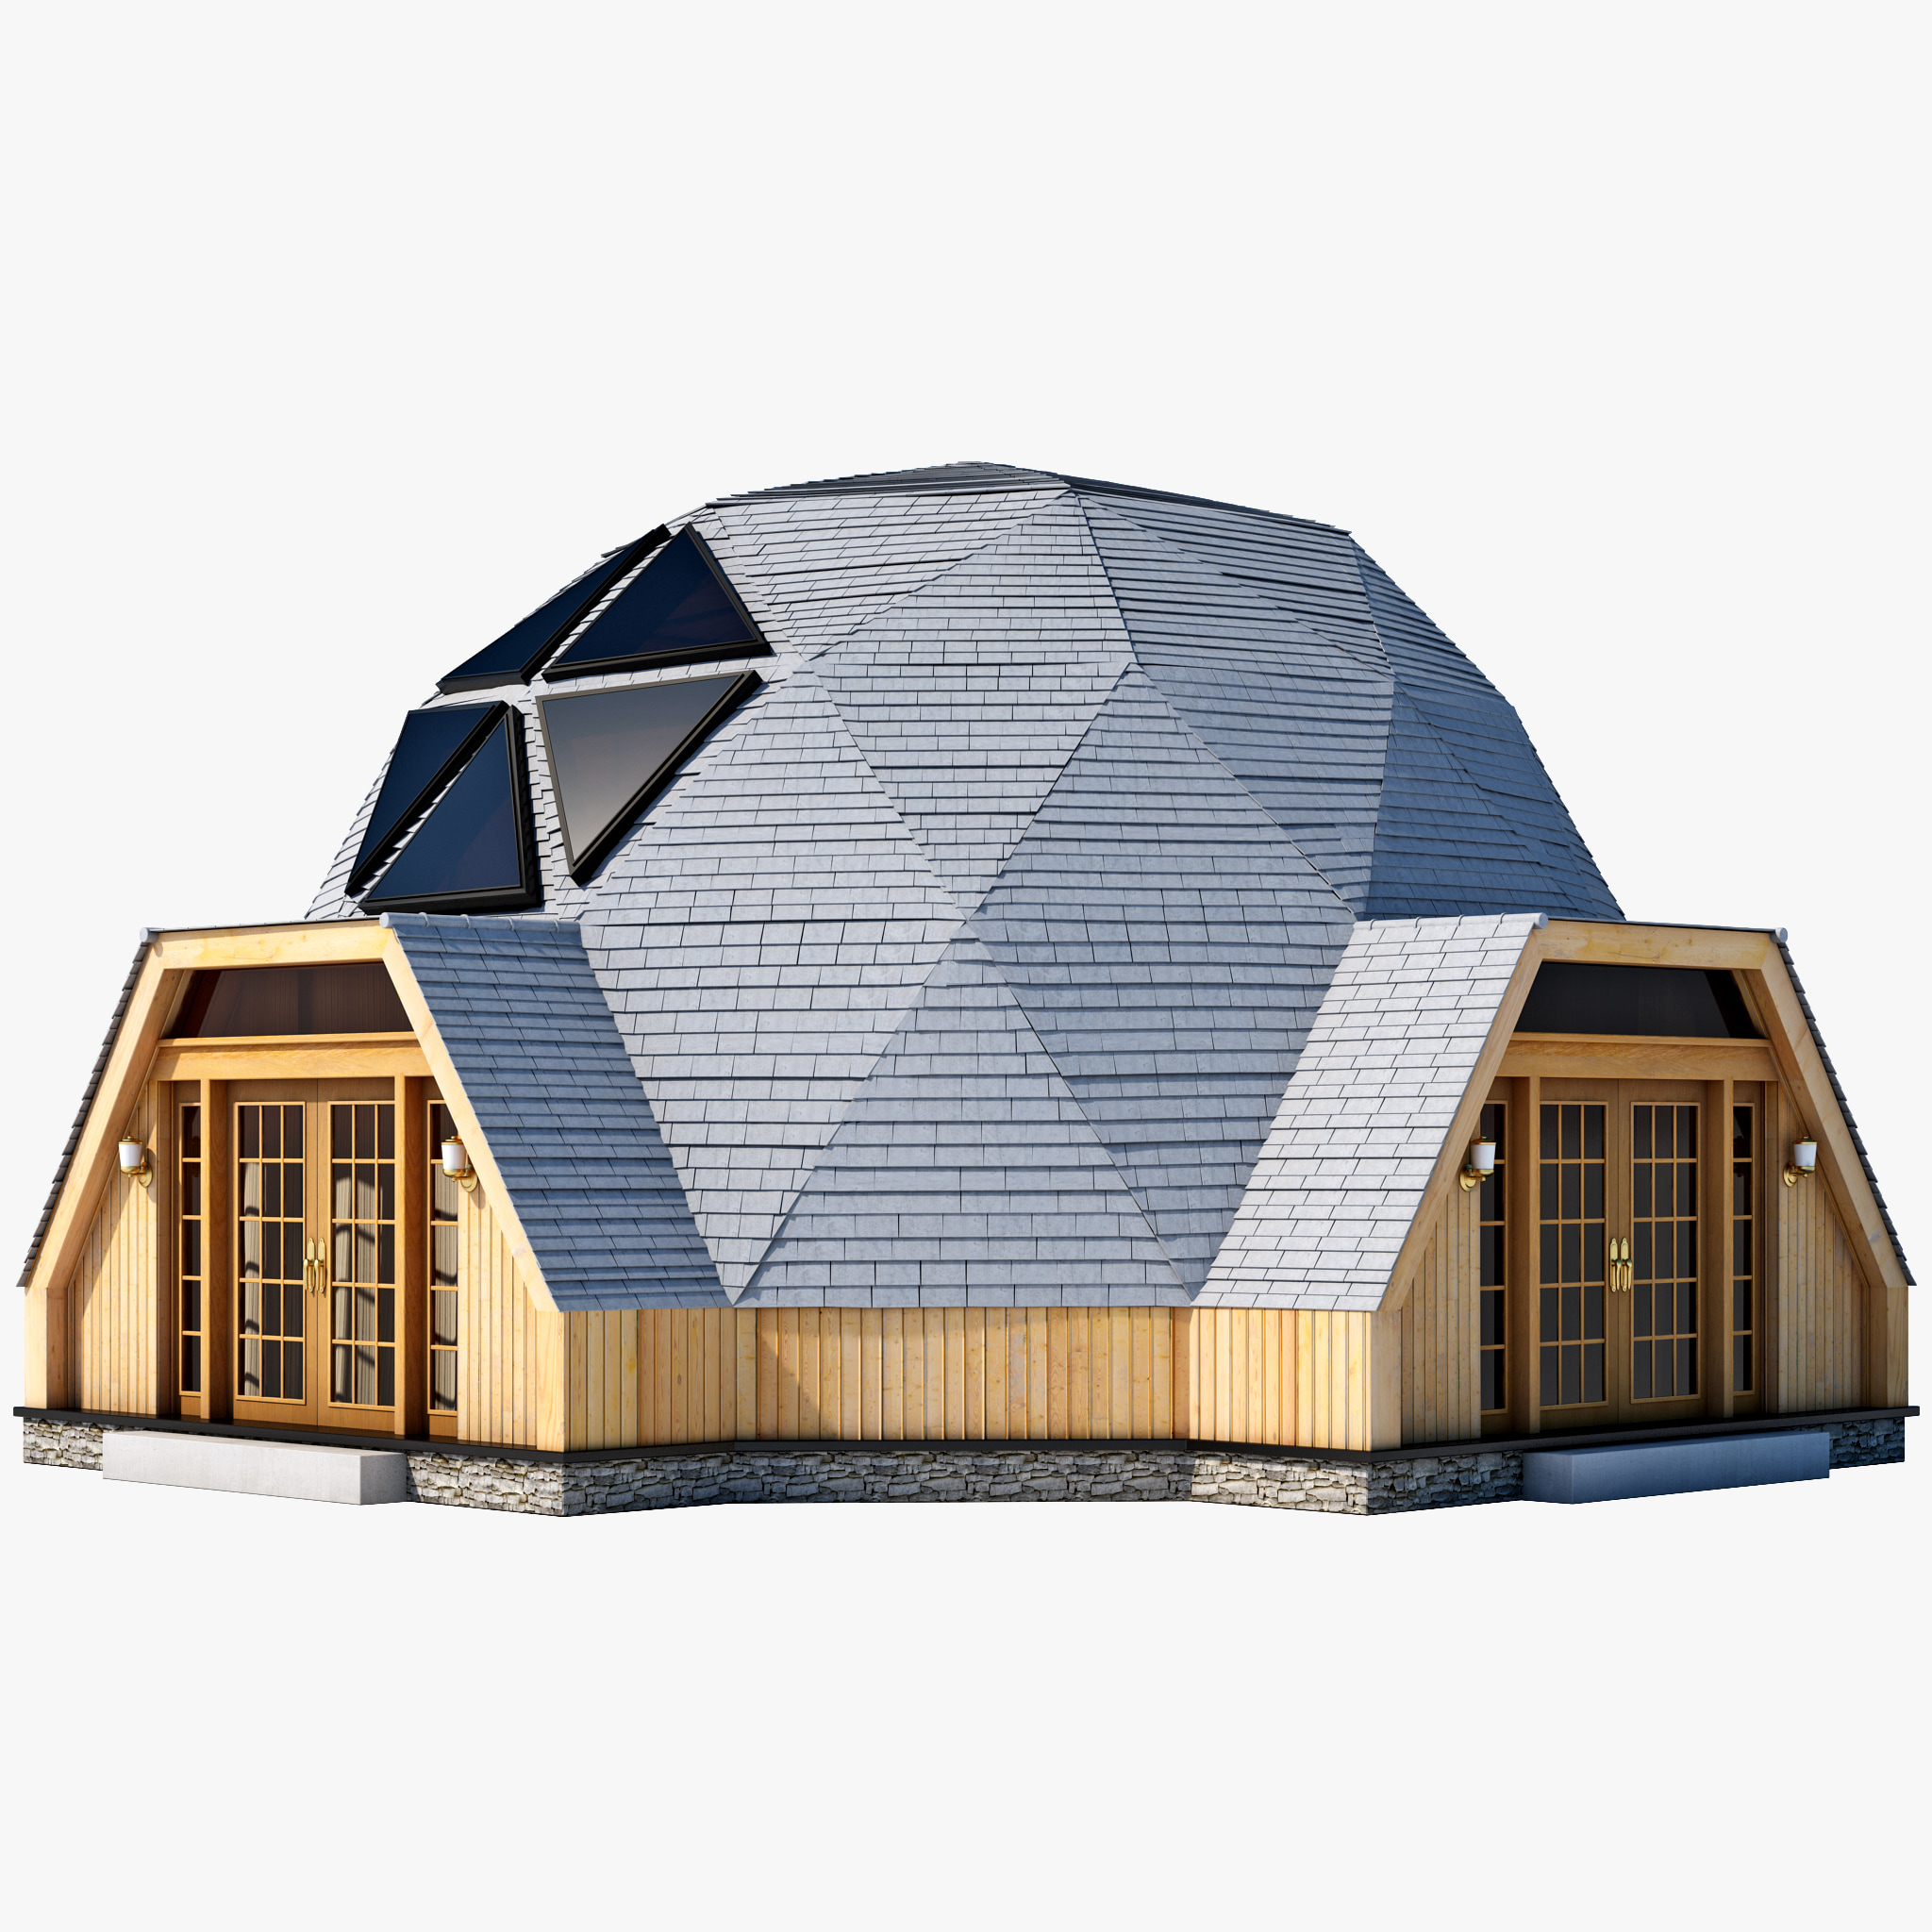 d geodesic domeGeodesic Dome House